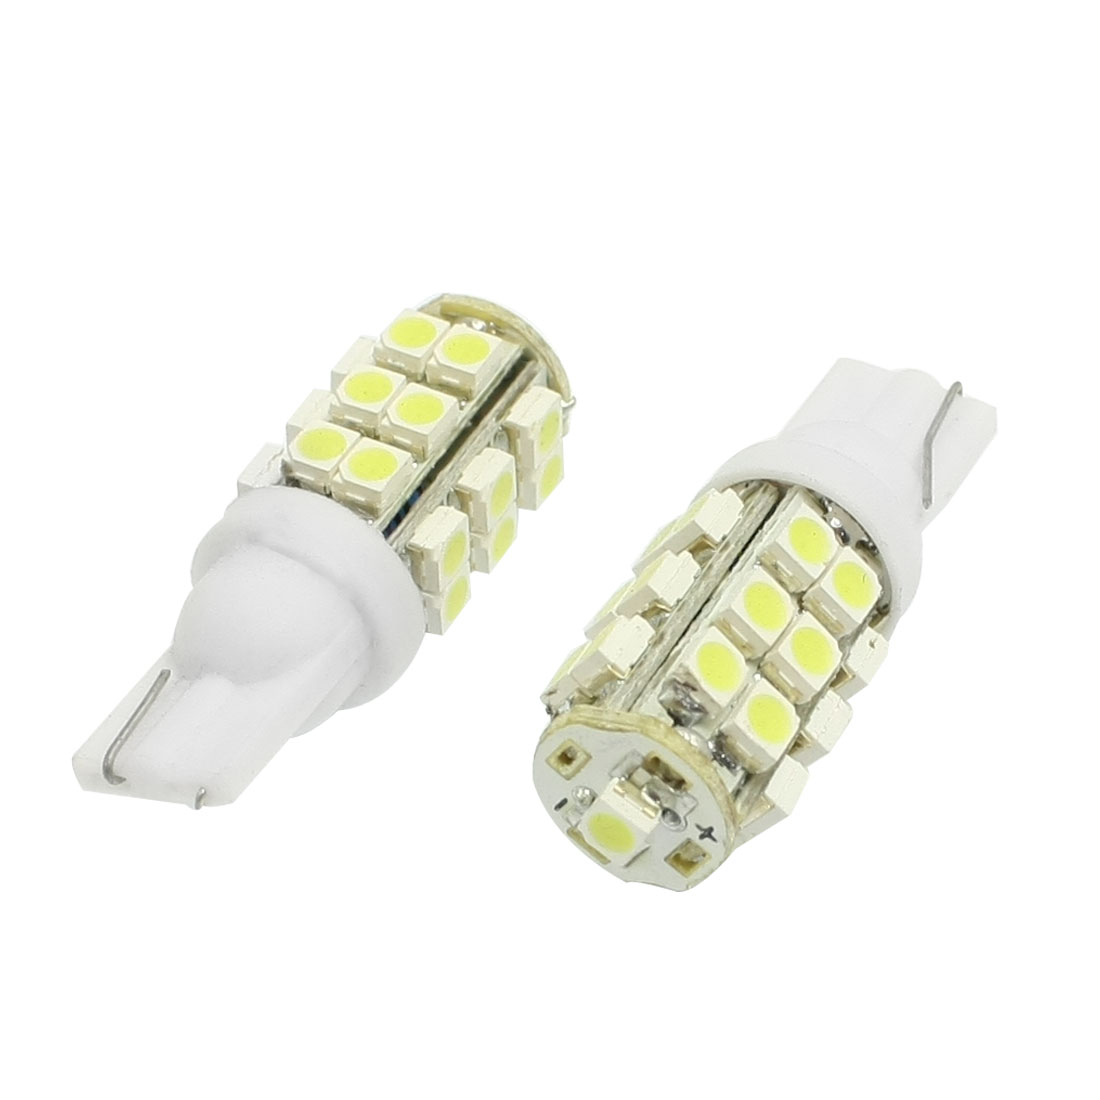 2 x T10 194 168 W5W 1210 SMD 25 LED Wedge Light Car License Plate Lamp Bulb